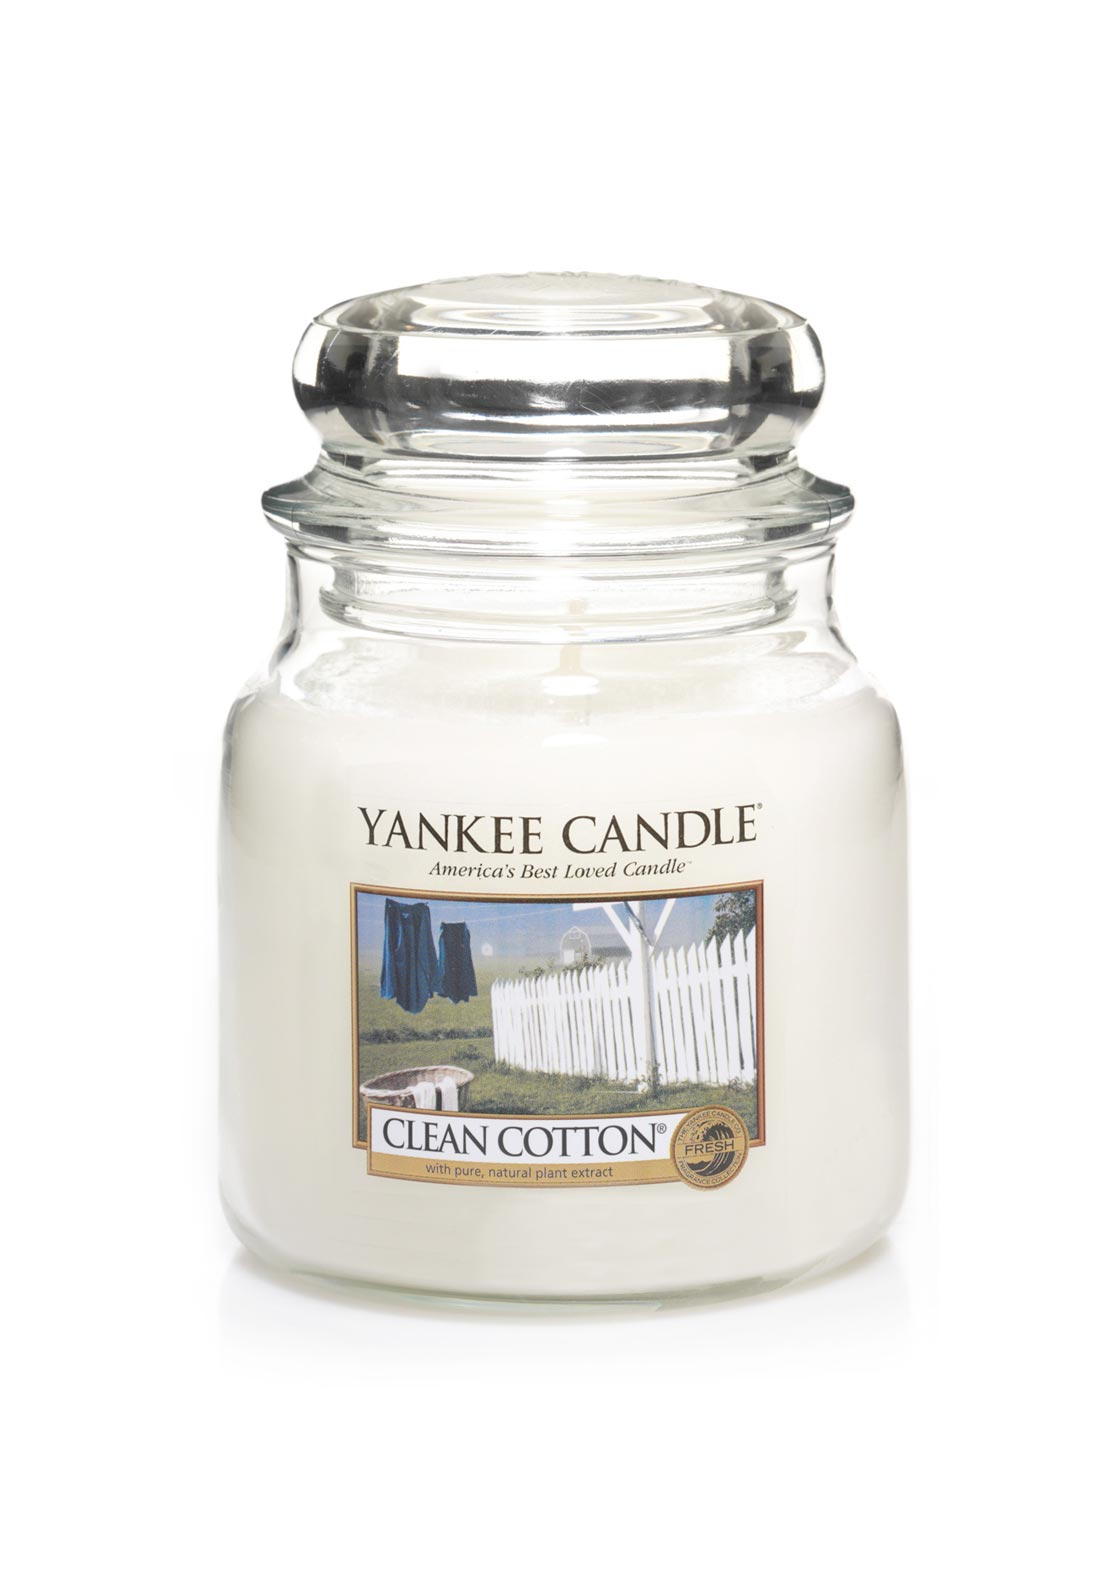 Yankee Candle Medium Classic Jar, Clean Cotton